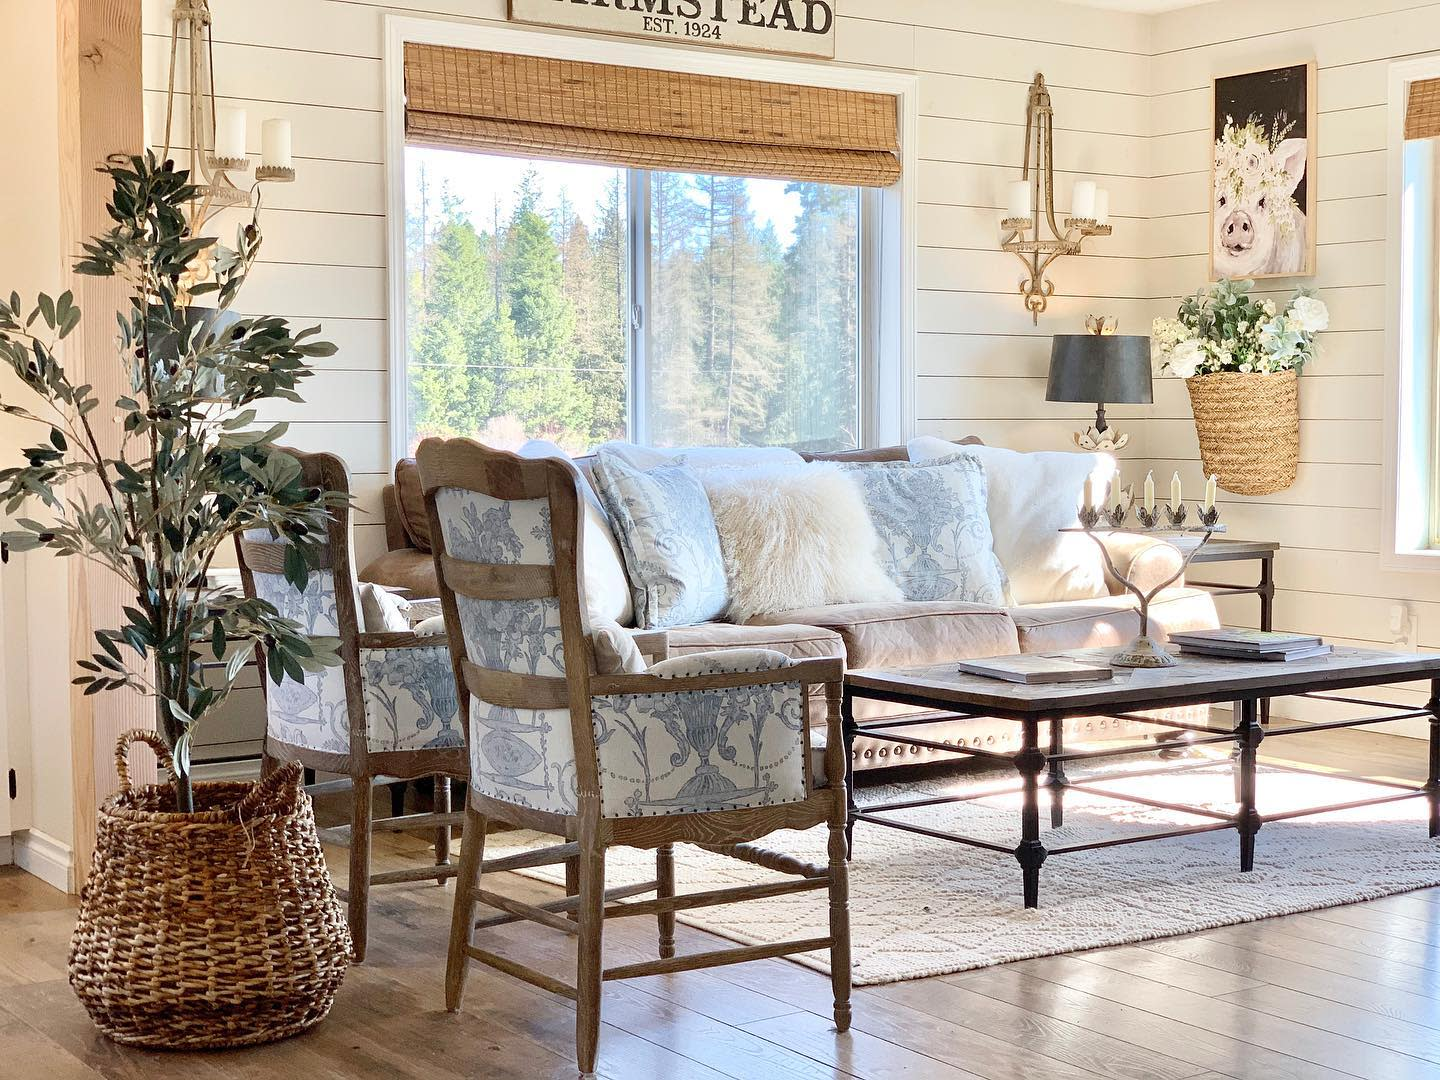 French Country Living Room Ideas -_panhandle_cottage_